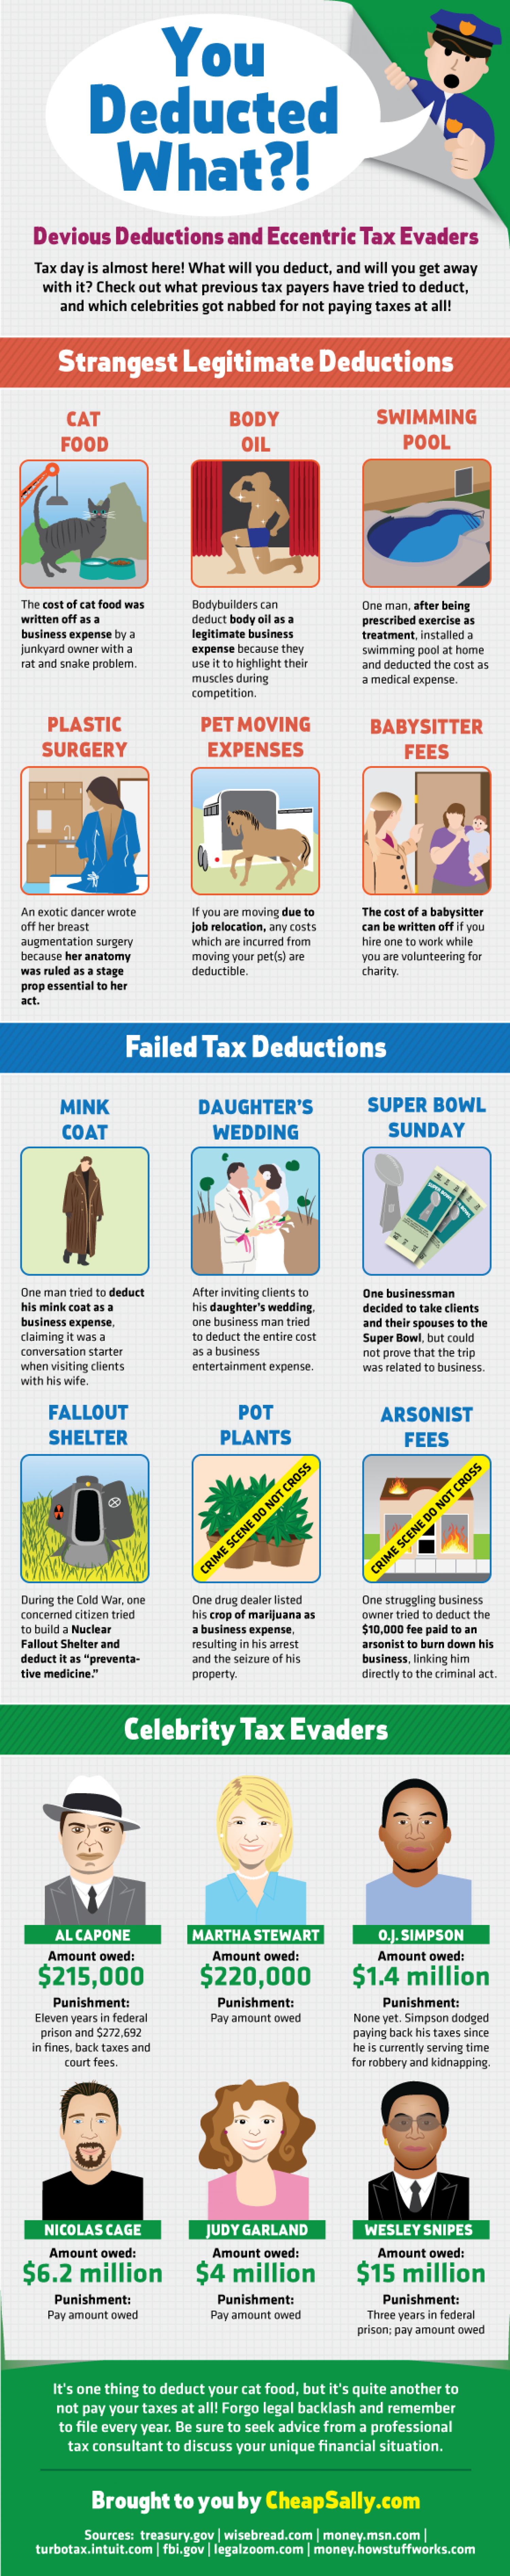 You Deducted What?! Devious Deductions and Eccentric Tax Evaders Infographic